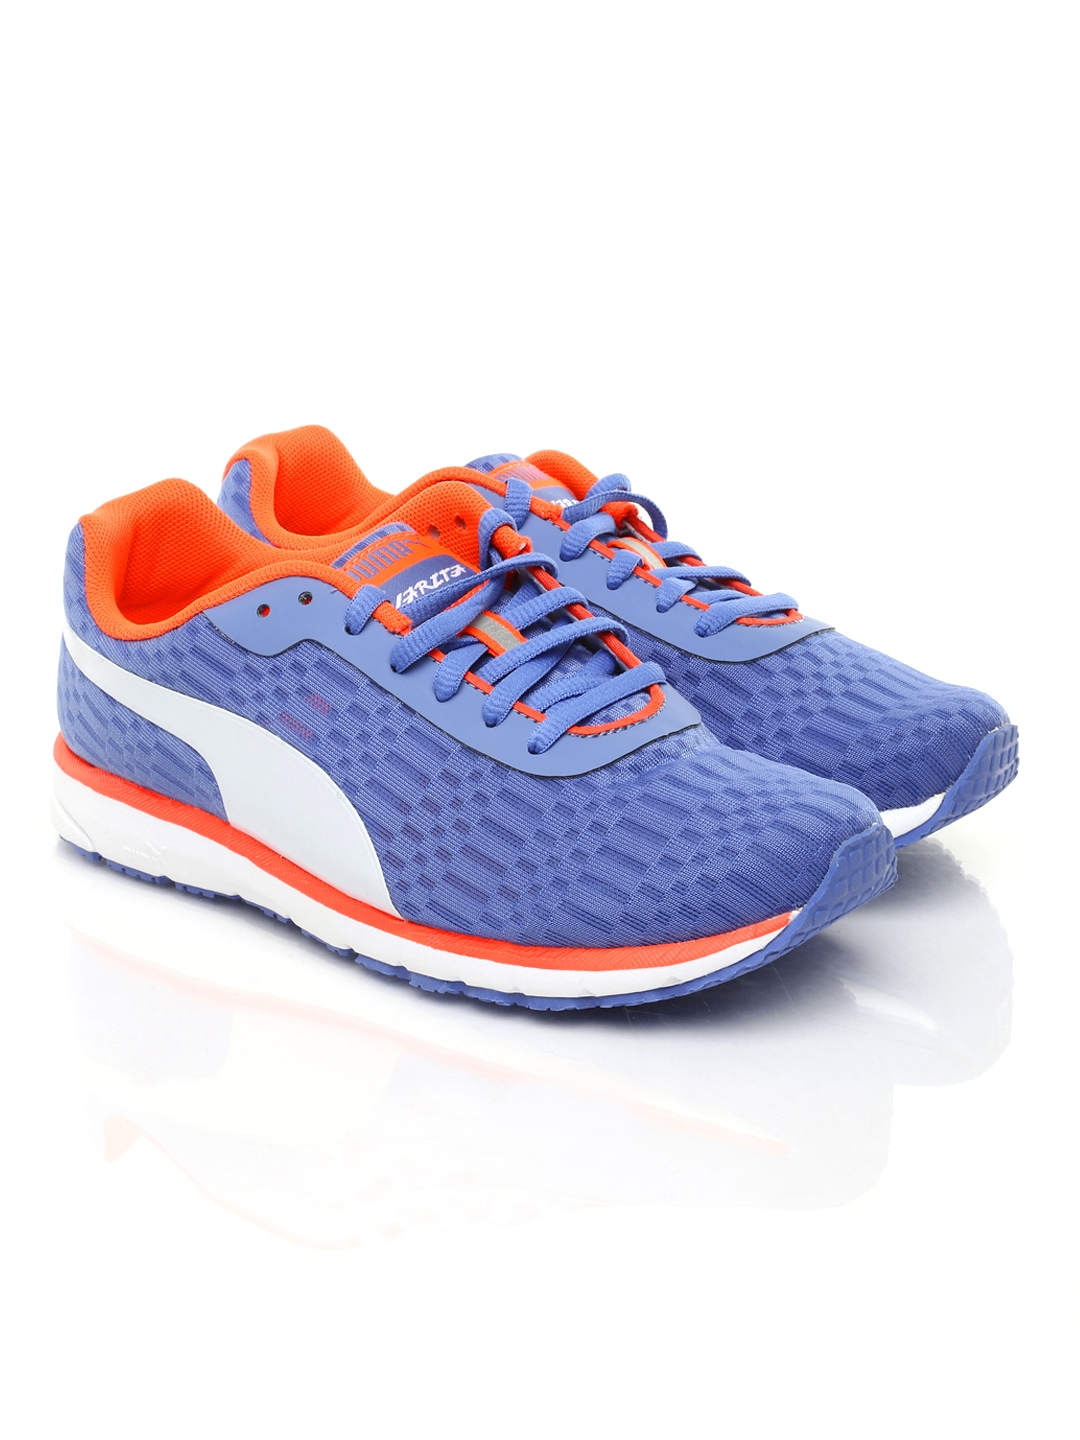 Puma Ladies Sports Shoes